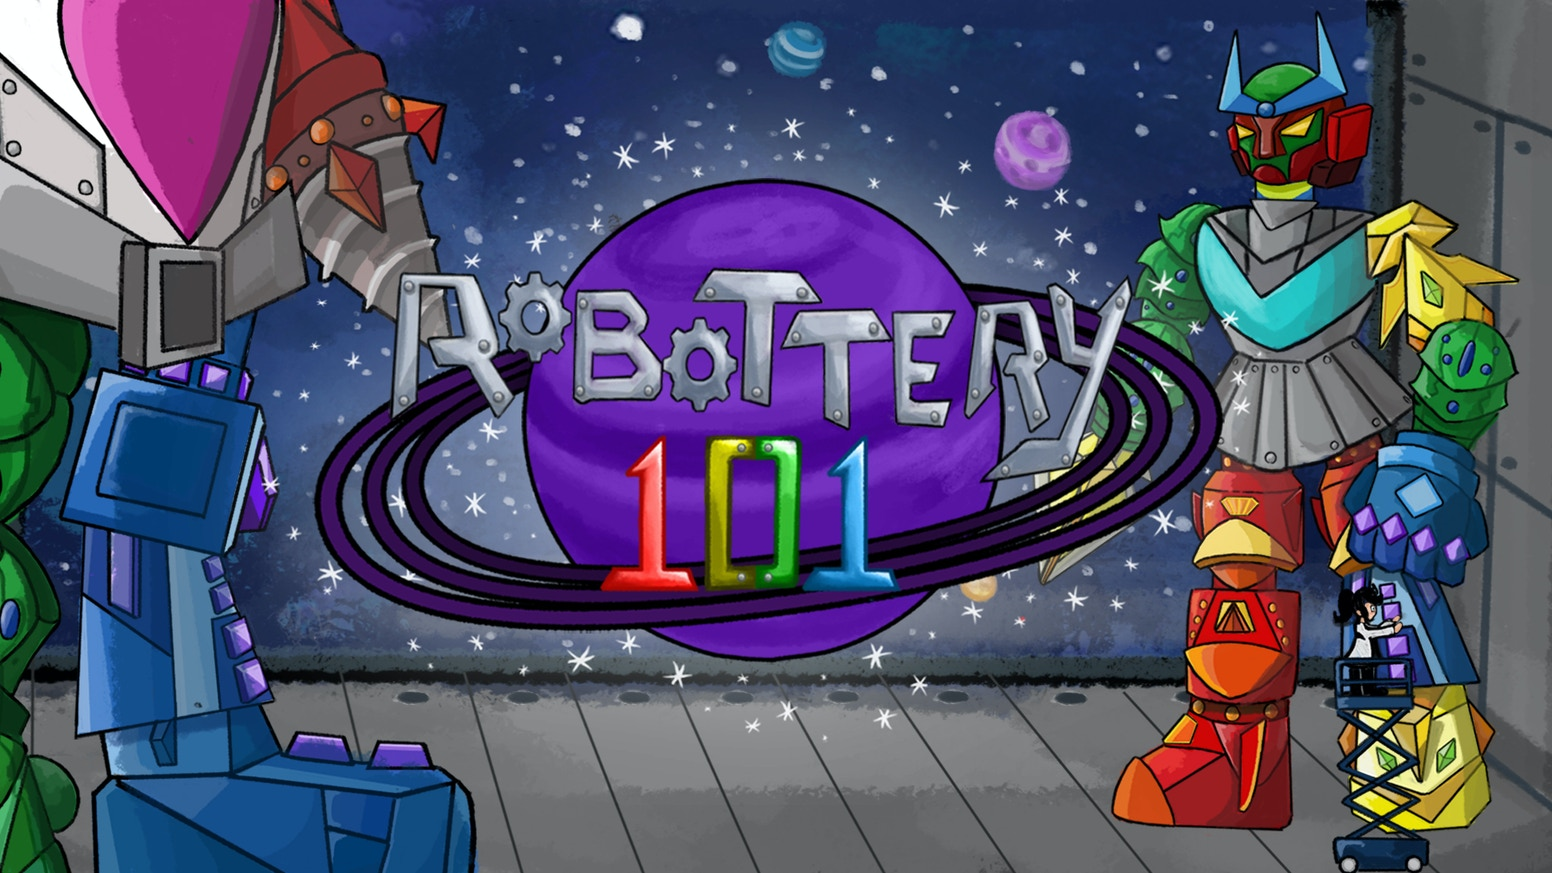 Robottery 101 is a set collection card game about building giant robots in space to dazzle your professors at the Robot Science Fair!